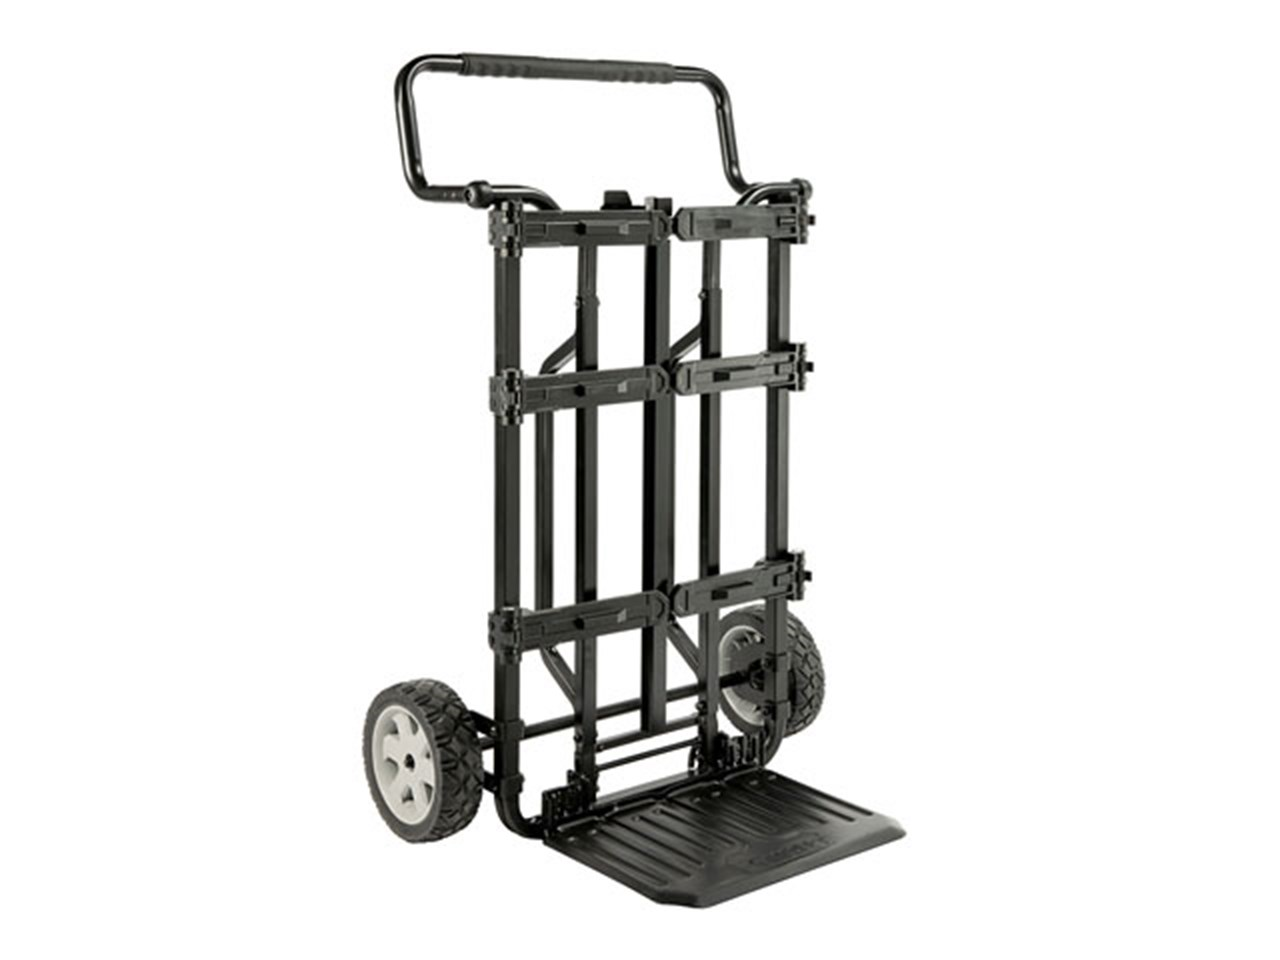 Dewalt Dew170324 Toughsystem Heavy Duty Trolley 1 70 324